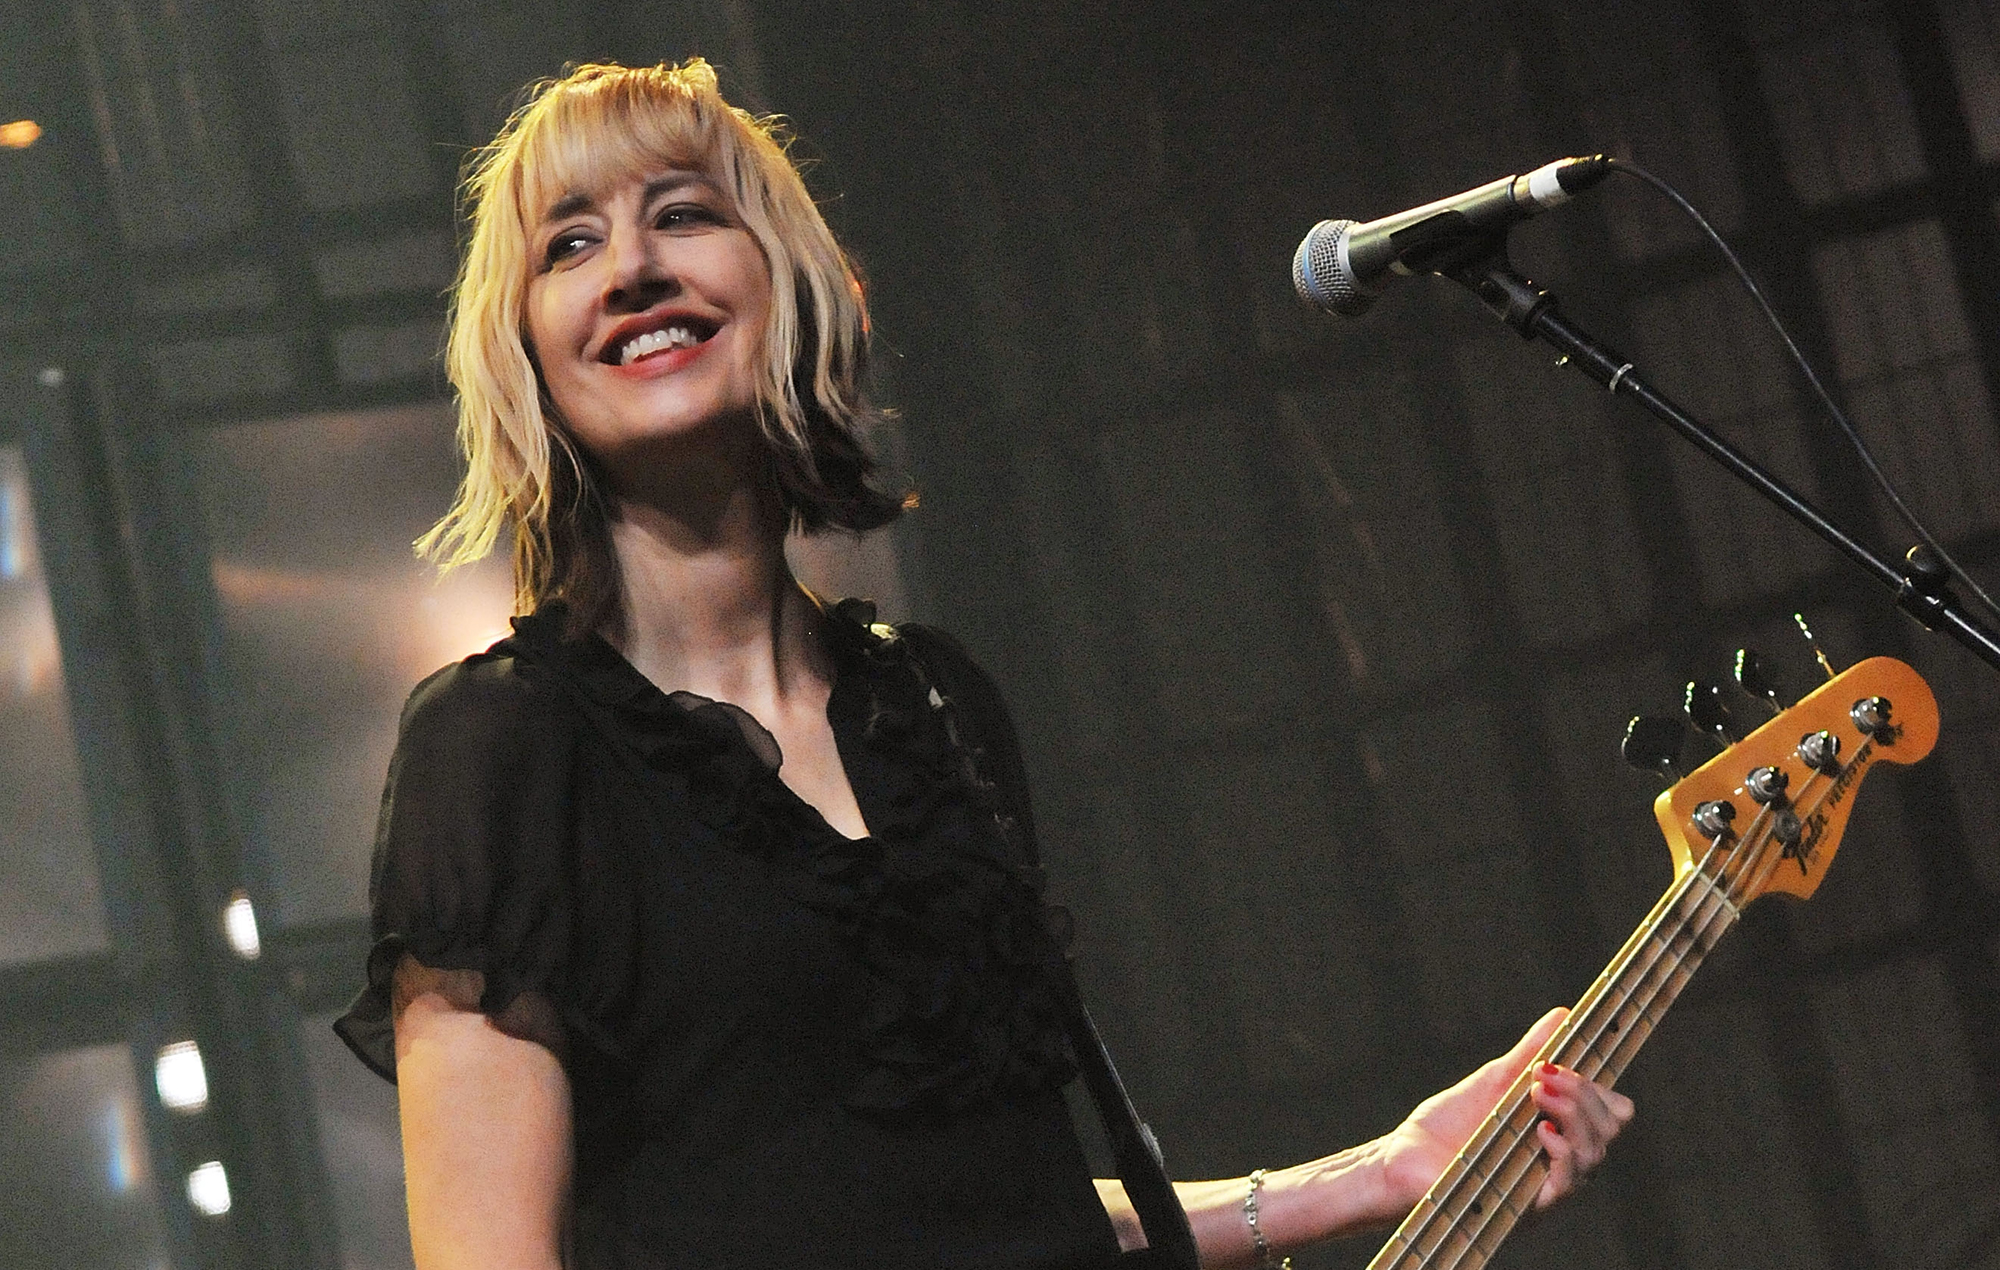 Kim Shattuck, The Muffs frontwoman and guitarist, dies at 56